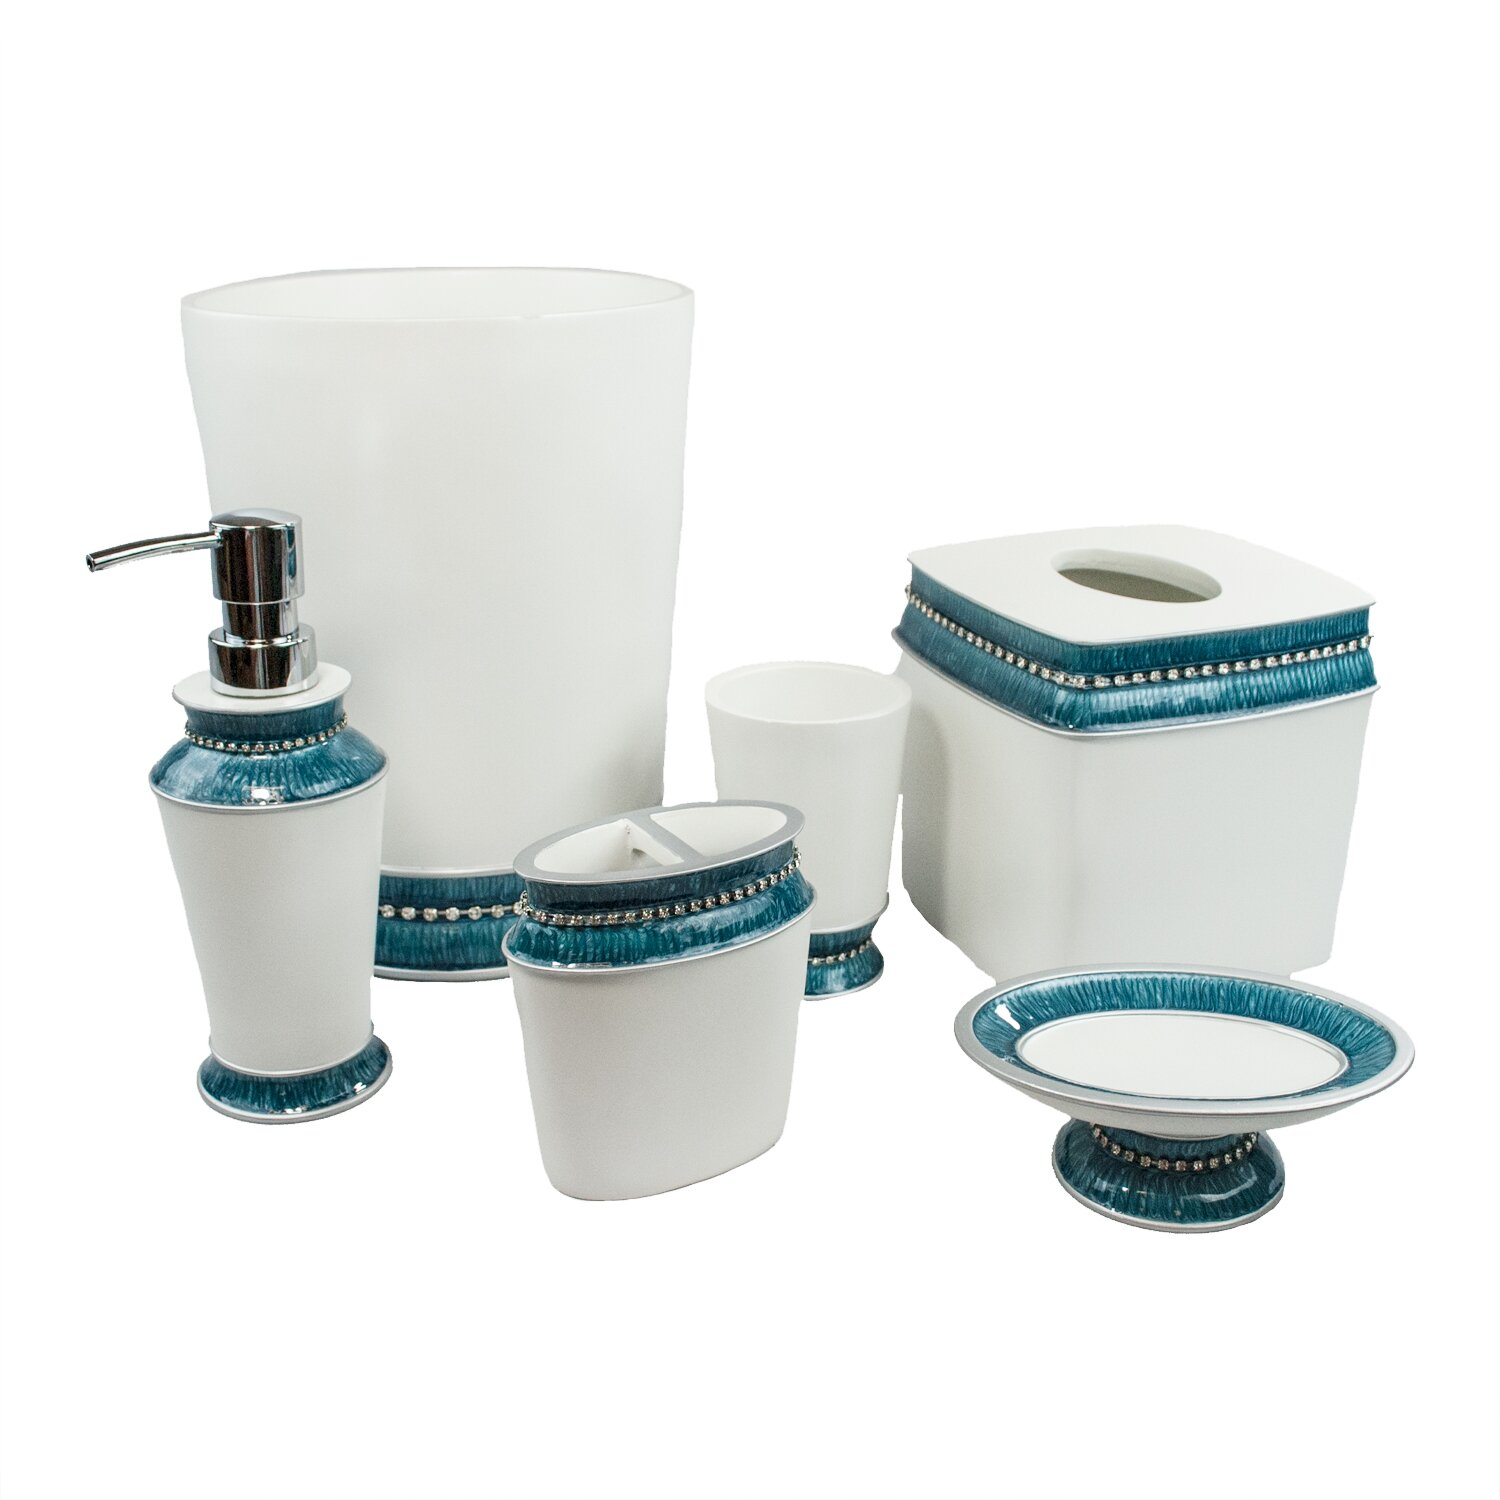 Mercury glass bathroom accessories - Sherry Kline Victoria Jewel 6 Piece Bathroom Accessory Set Sherry Kline Victoria Jewel 6 Piece